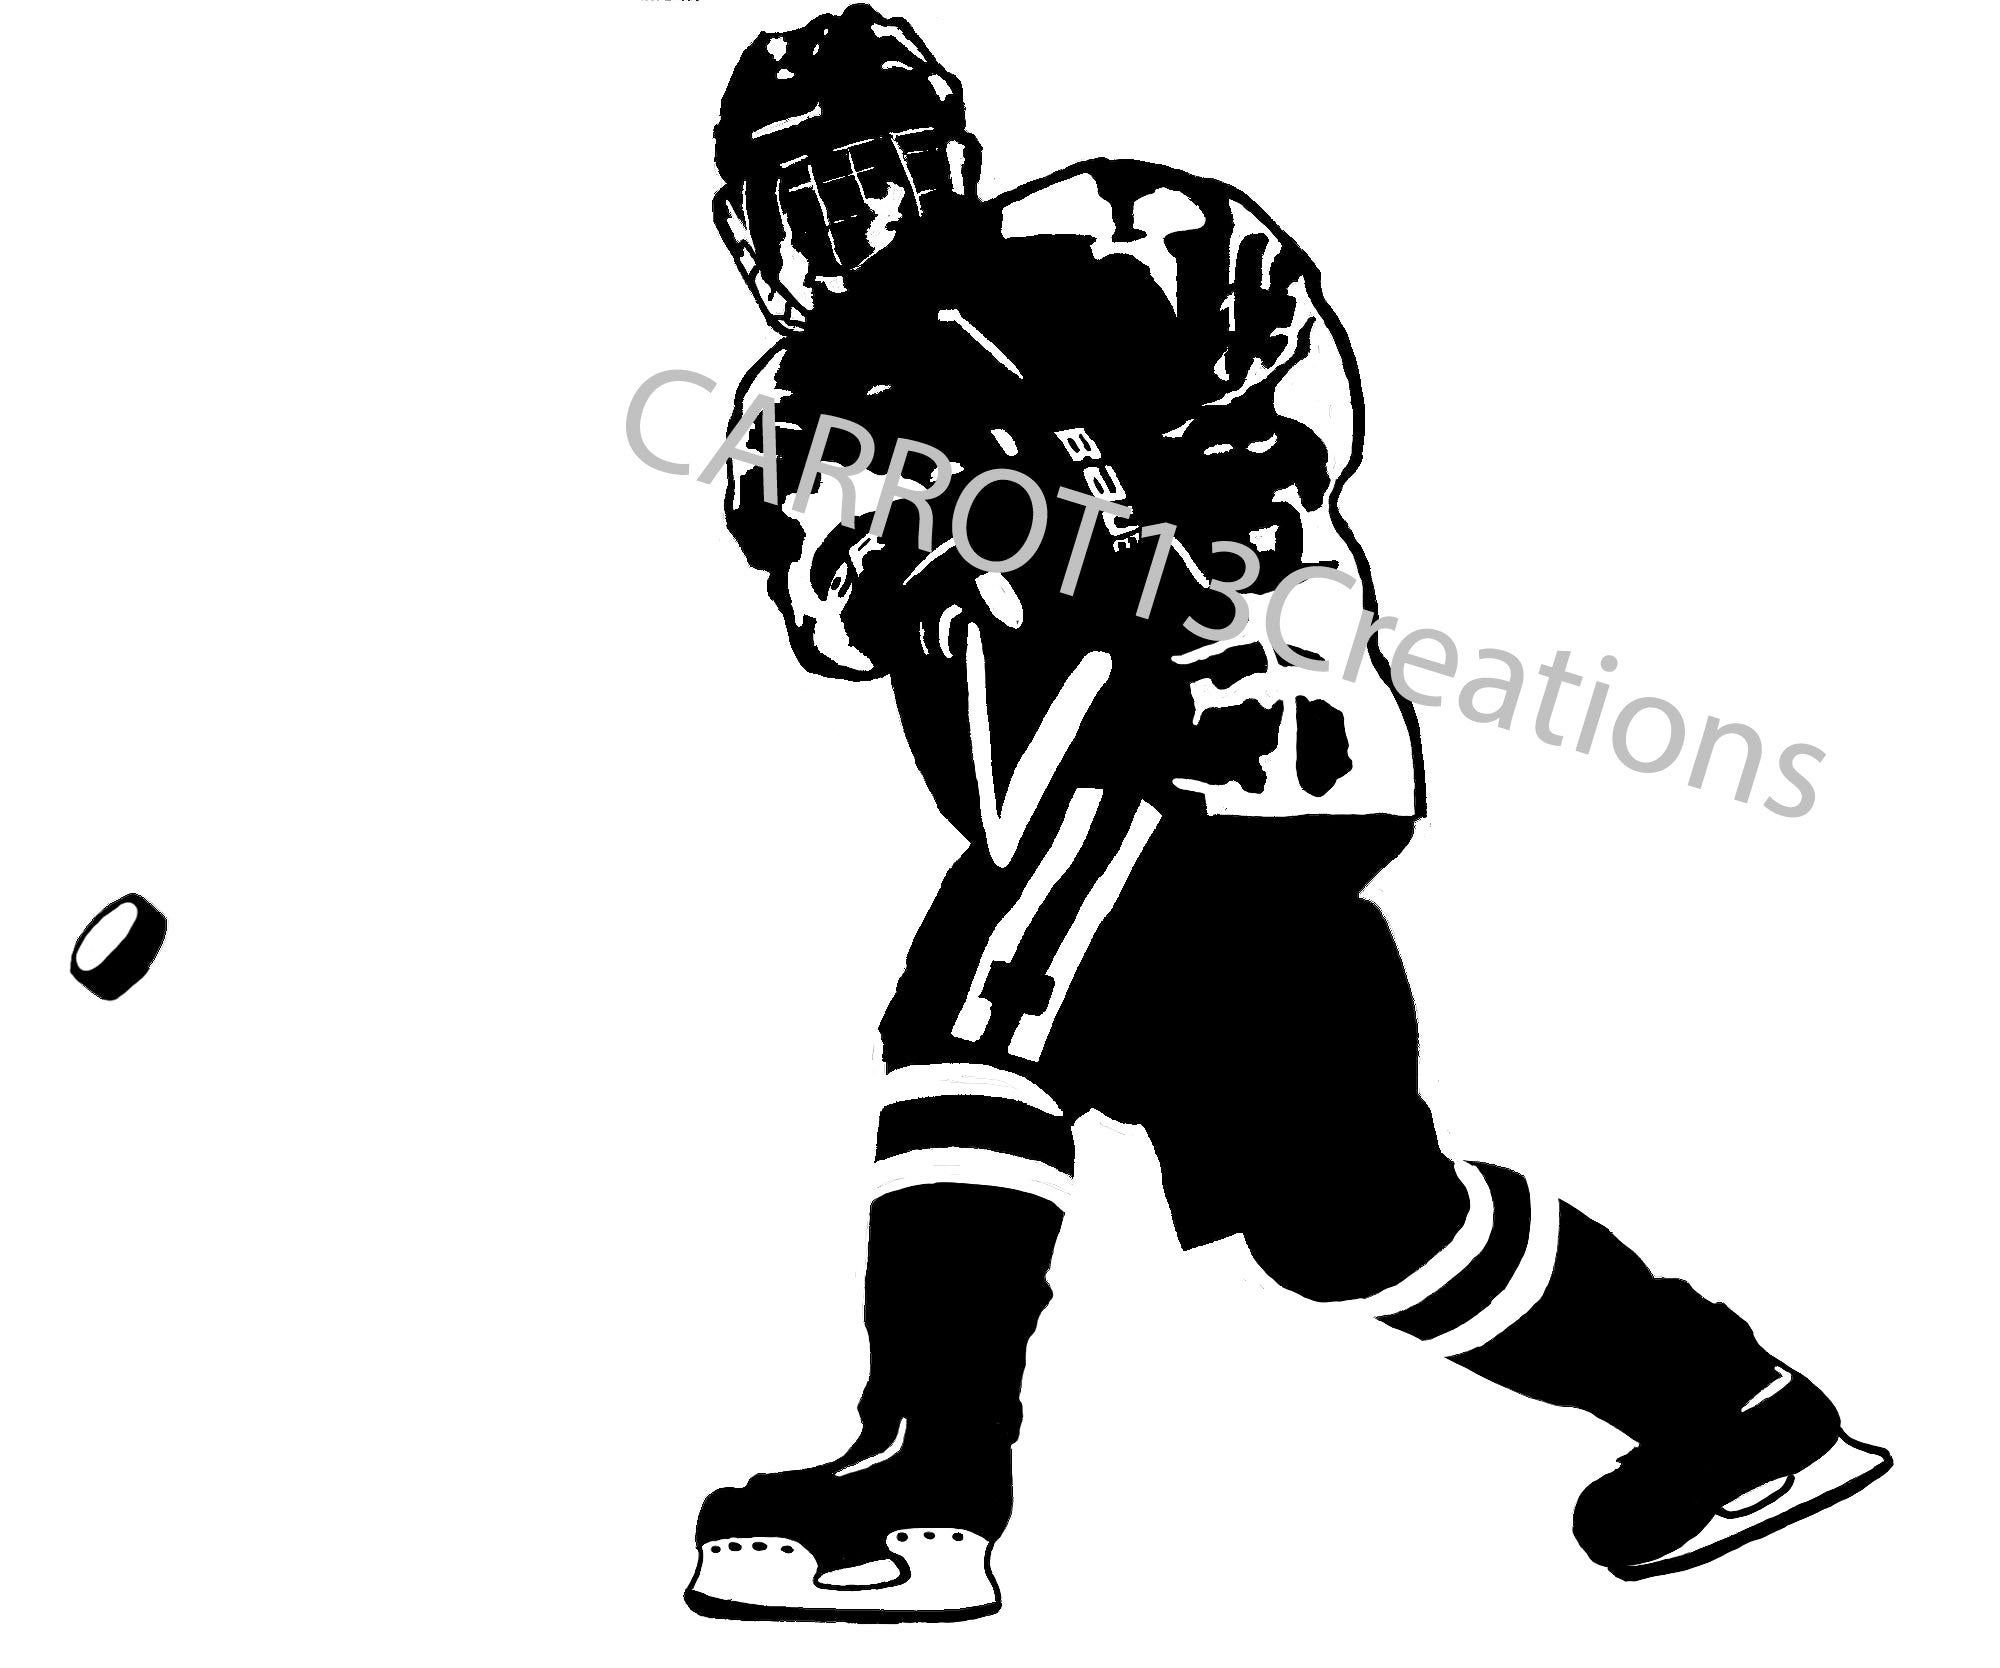 Youth Hockey Player Svg Png Jpg Files For Vinyl Decal Etsy In 2020 Silhouette Projects Silhouette Svg Vinyl Decals